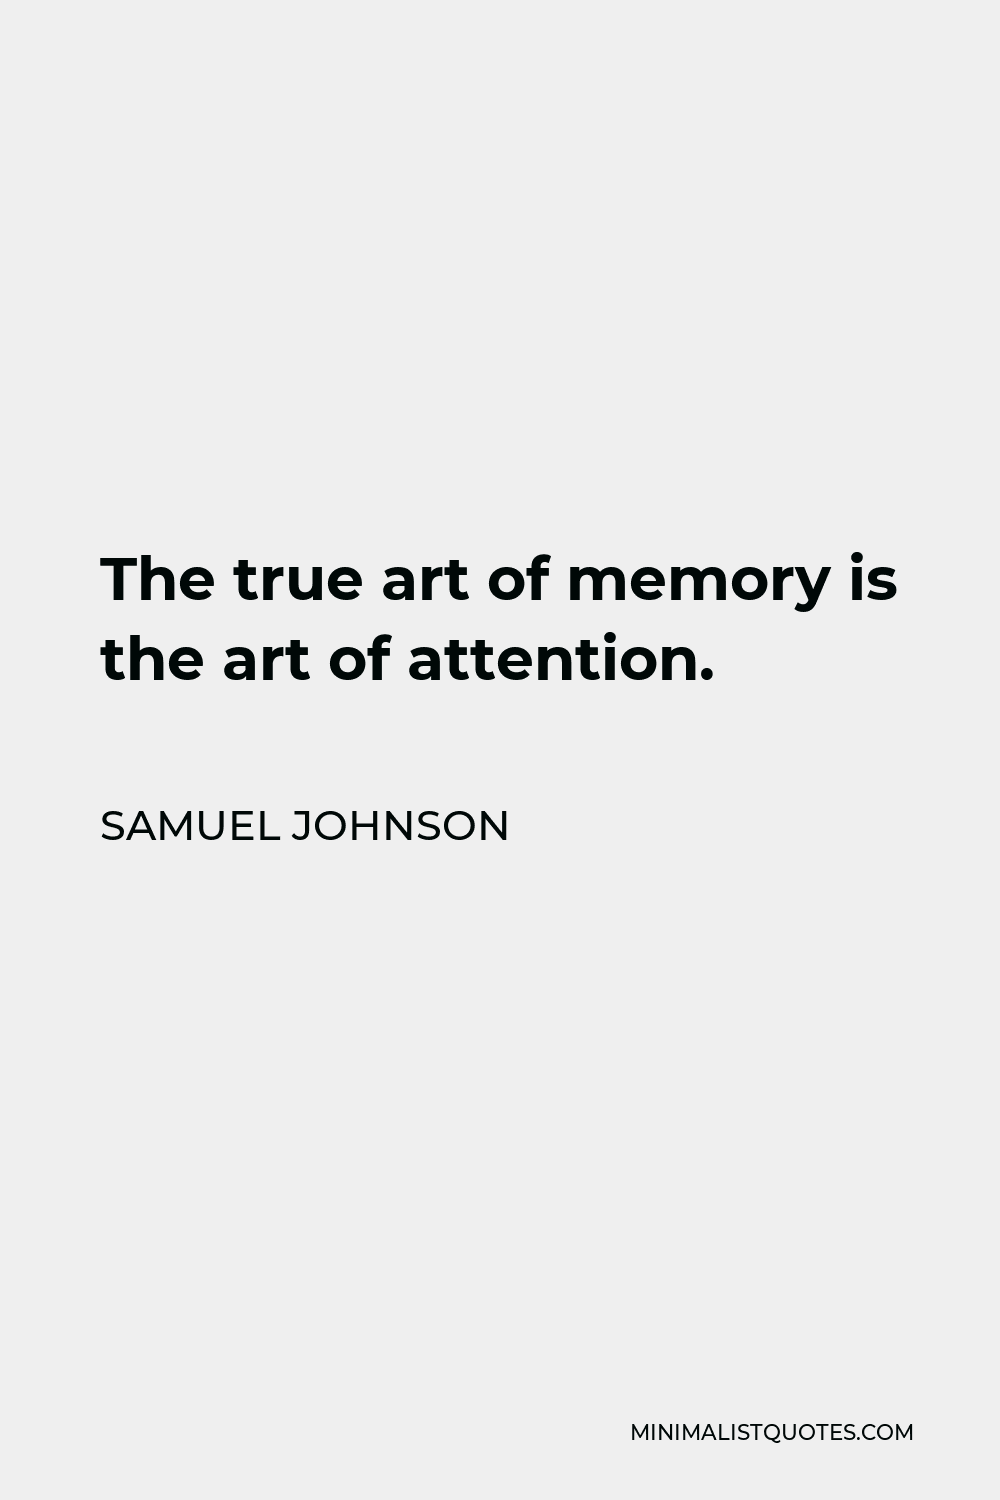 Samuel Johnson Quote - The true art of memory is the art of attention.